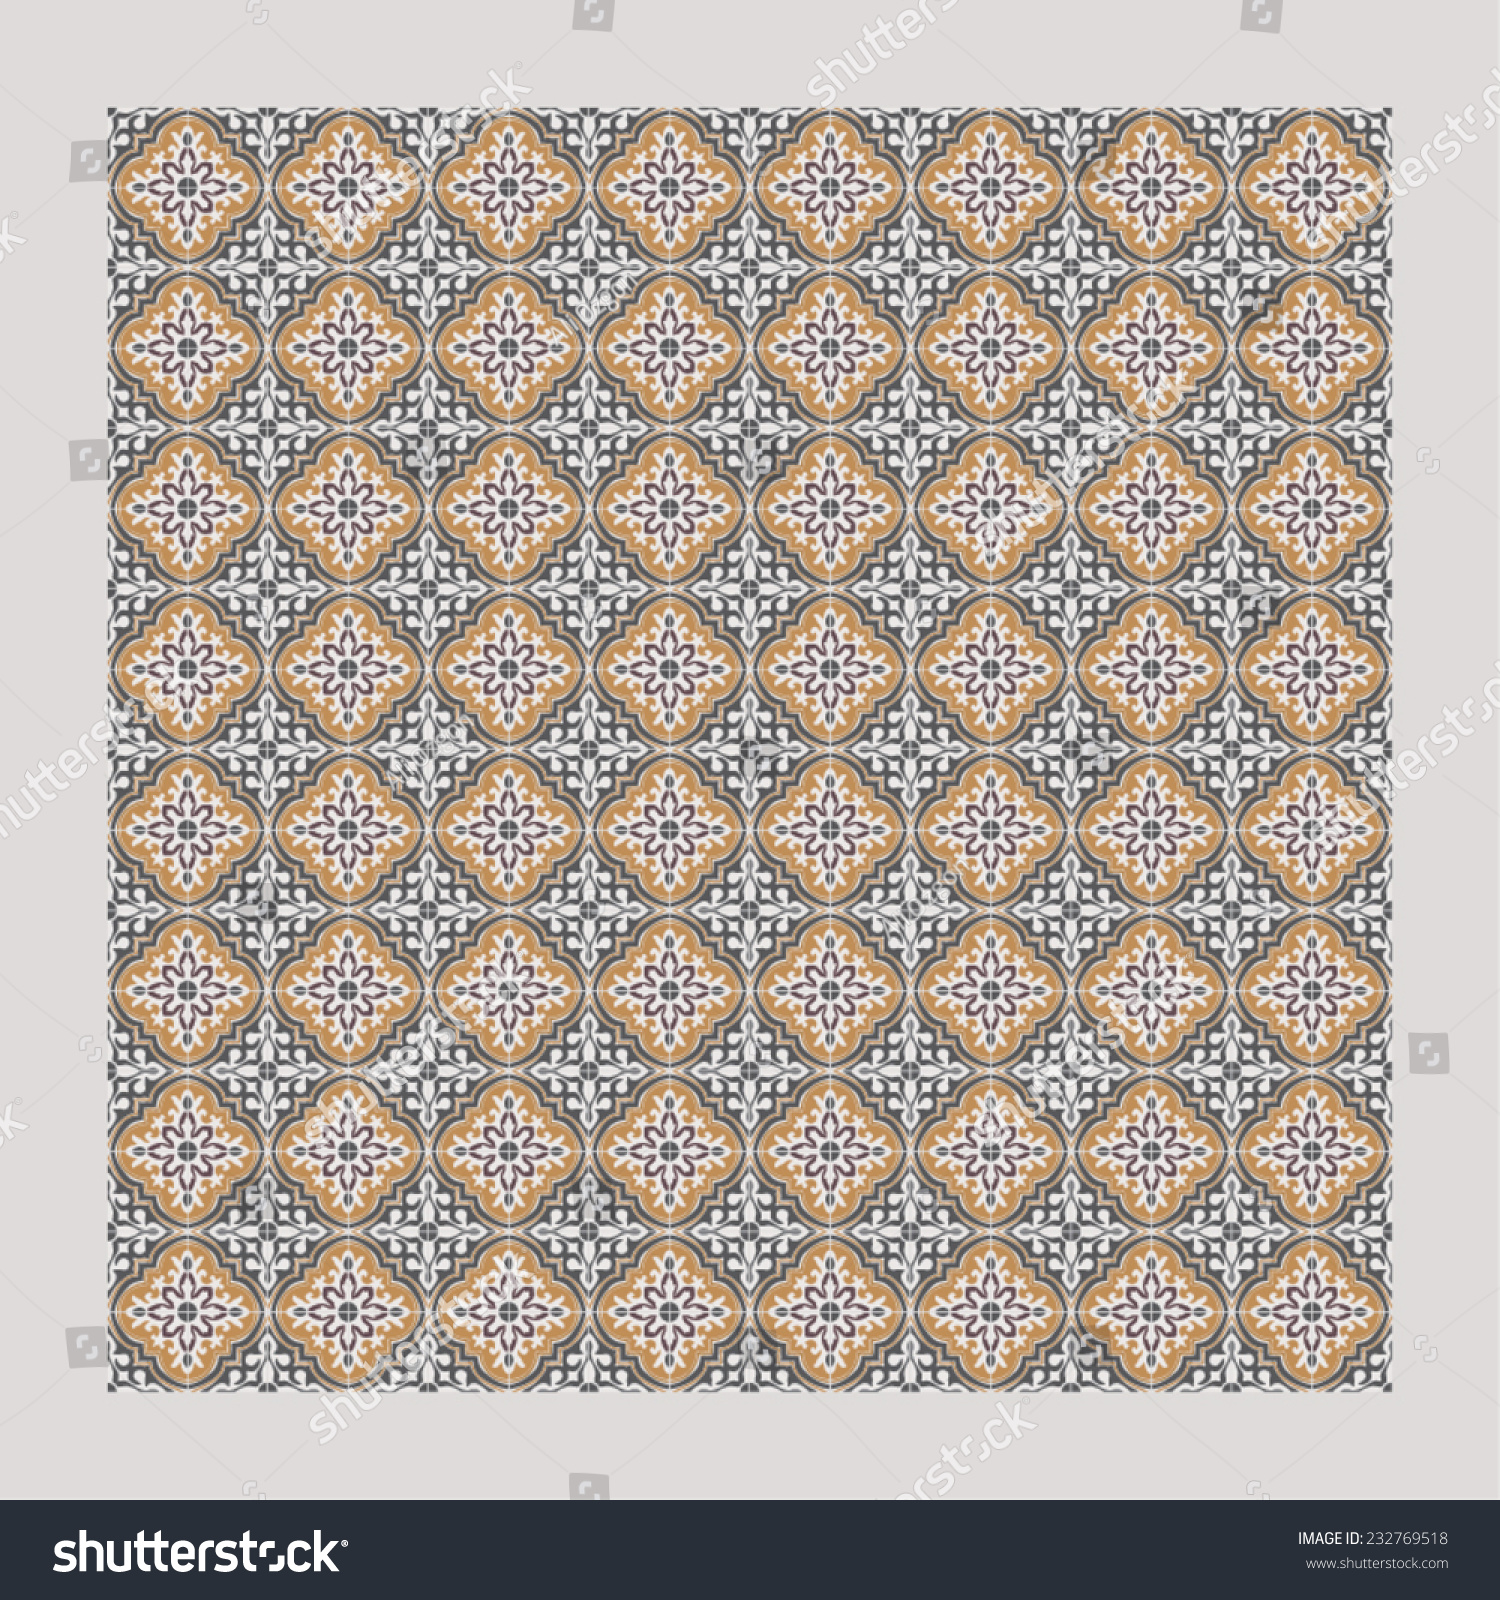 Turkish Design Wallpaper : Damask background pattern design wallpaper